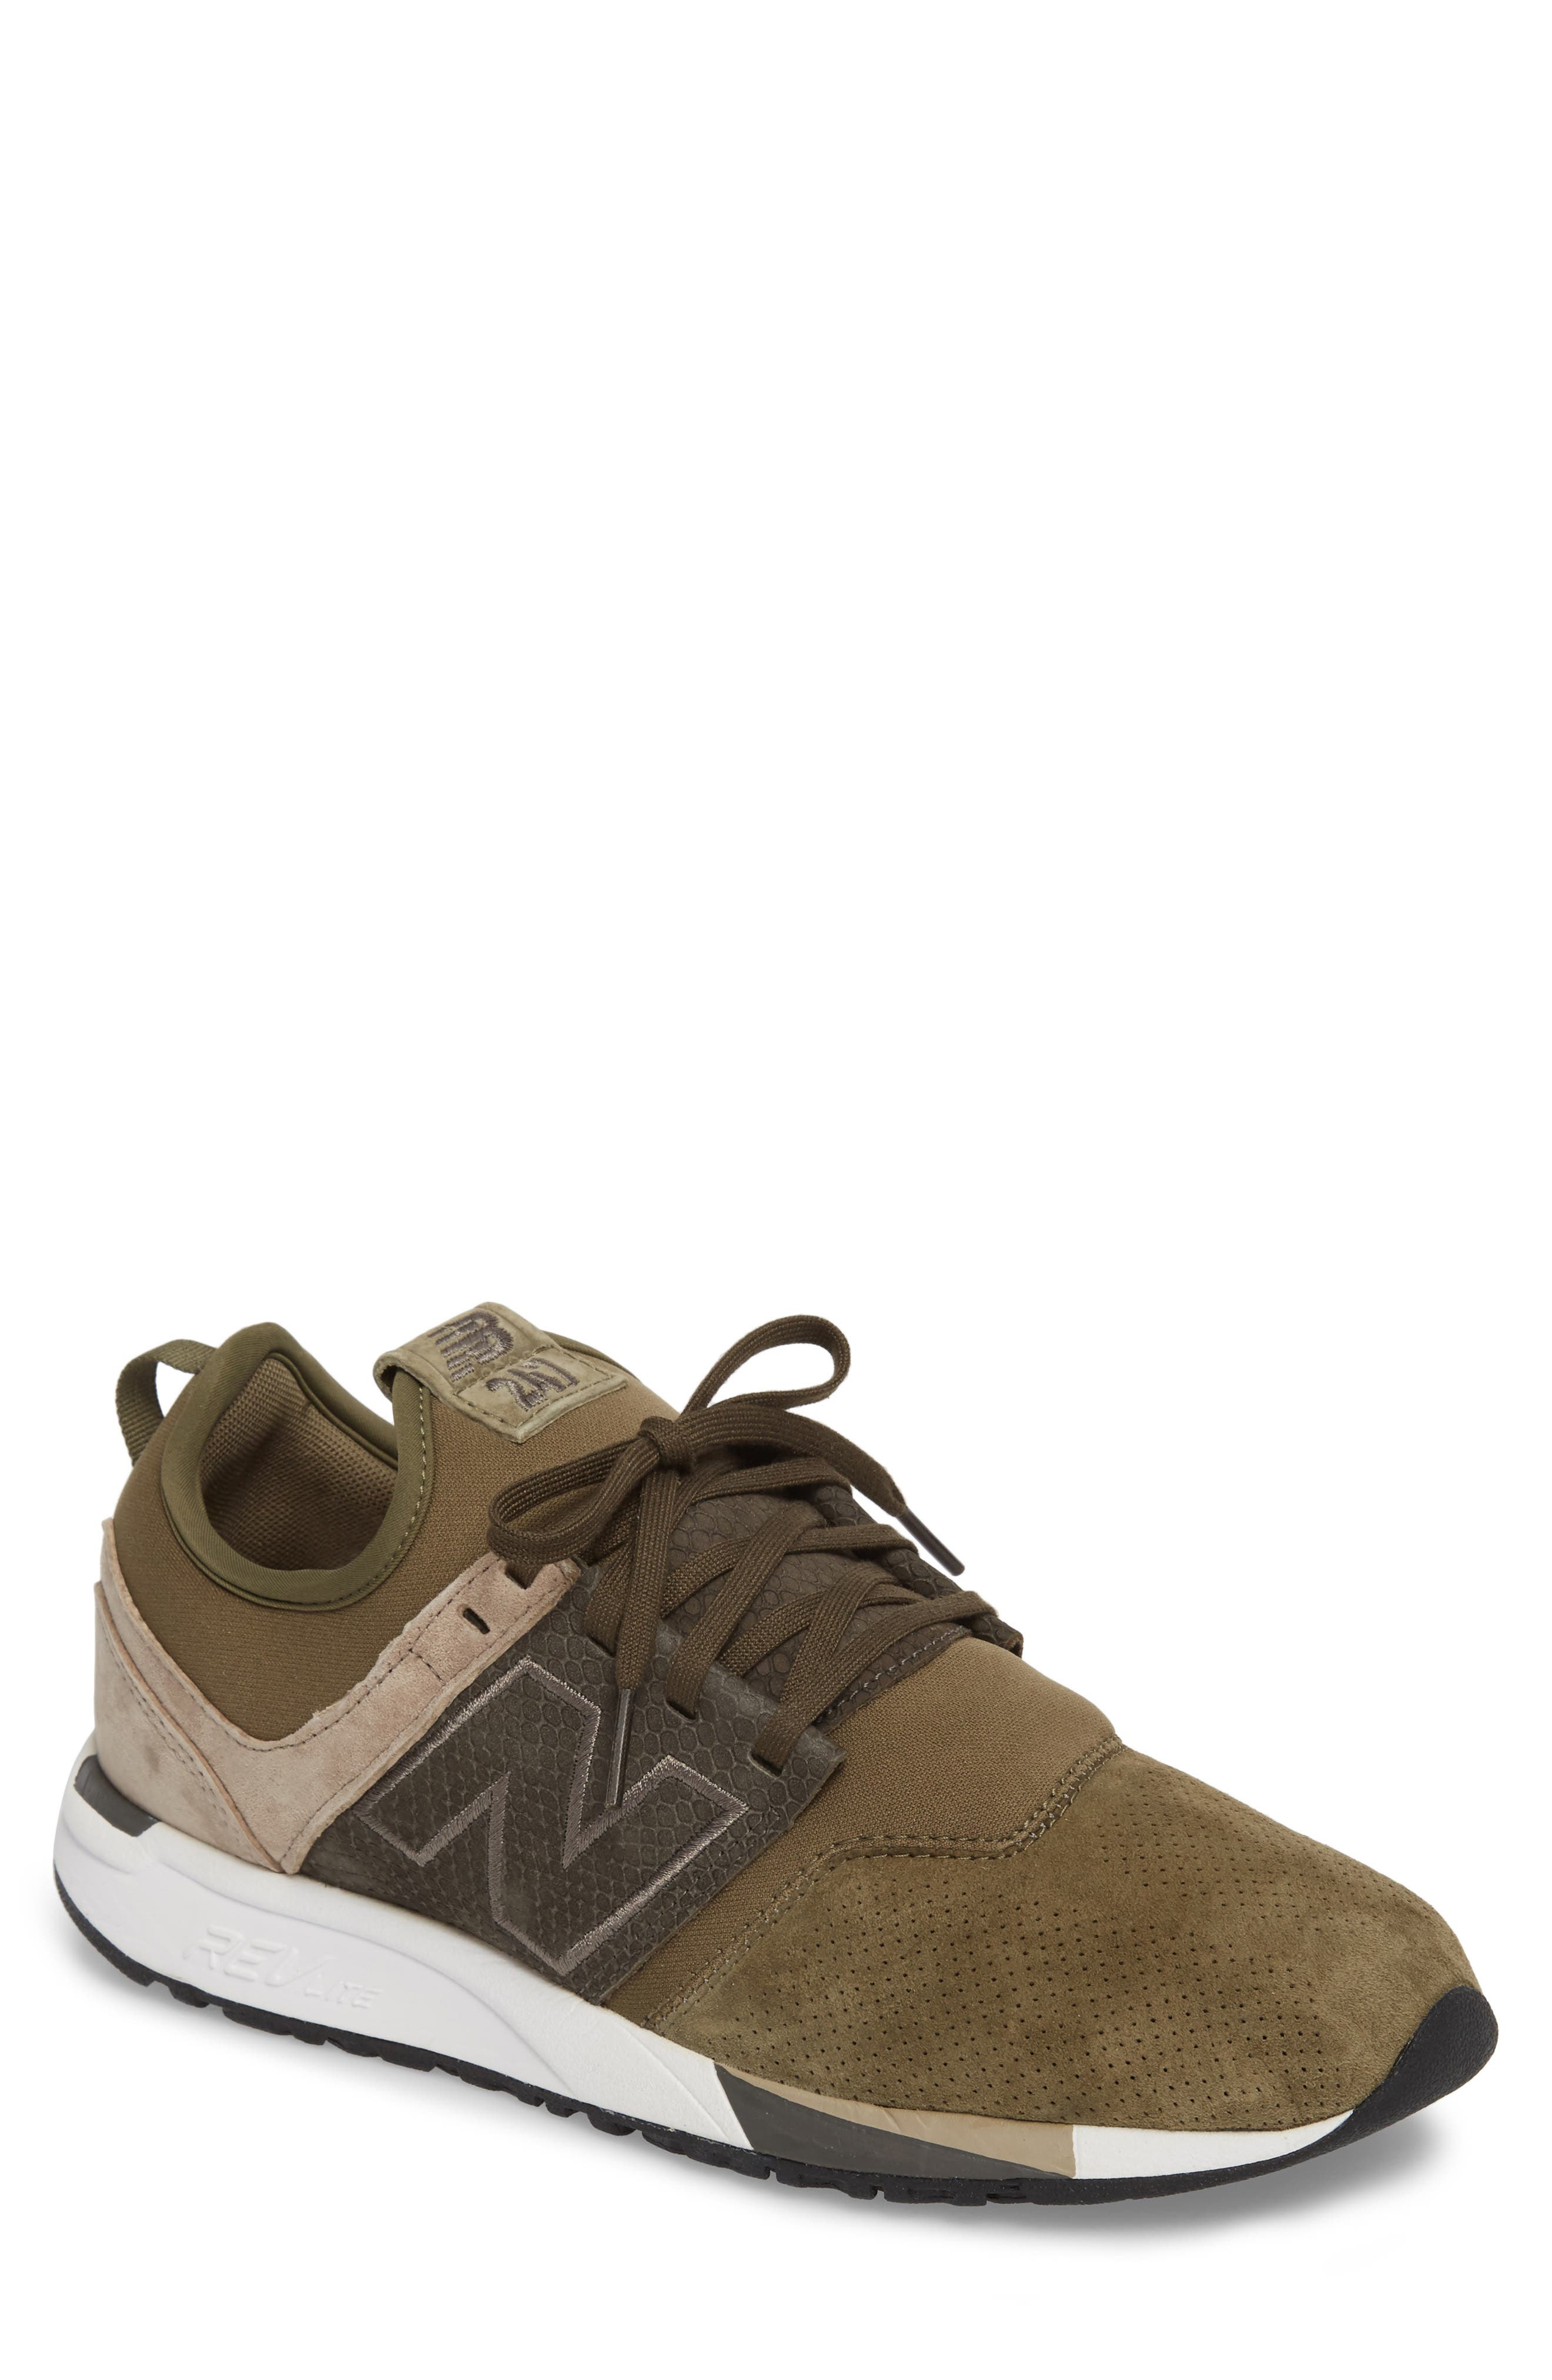 247 Luxe Sneaker,                             Main thumbnail 1, color,